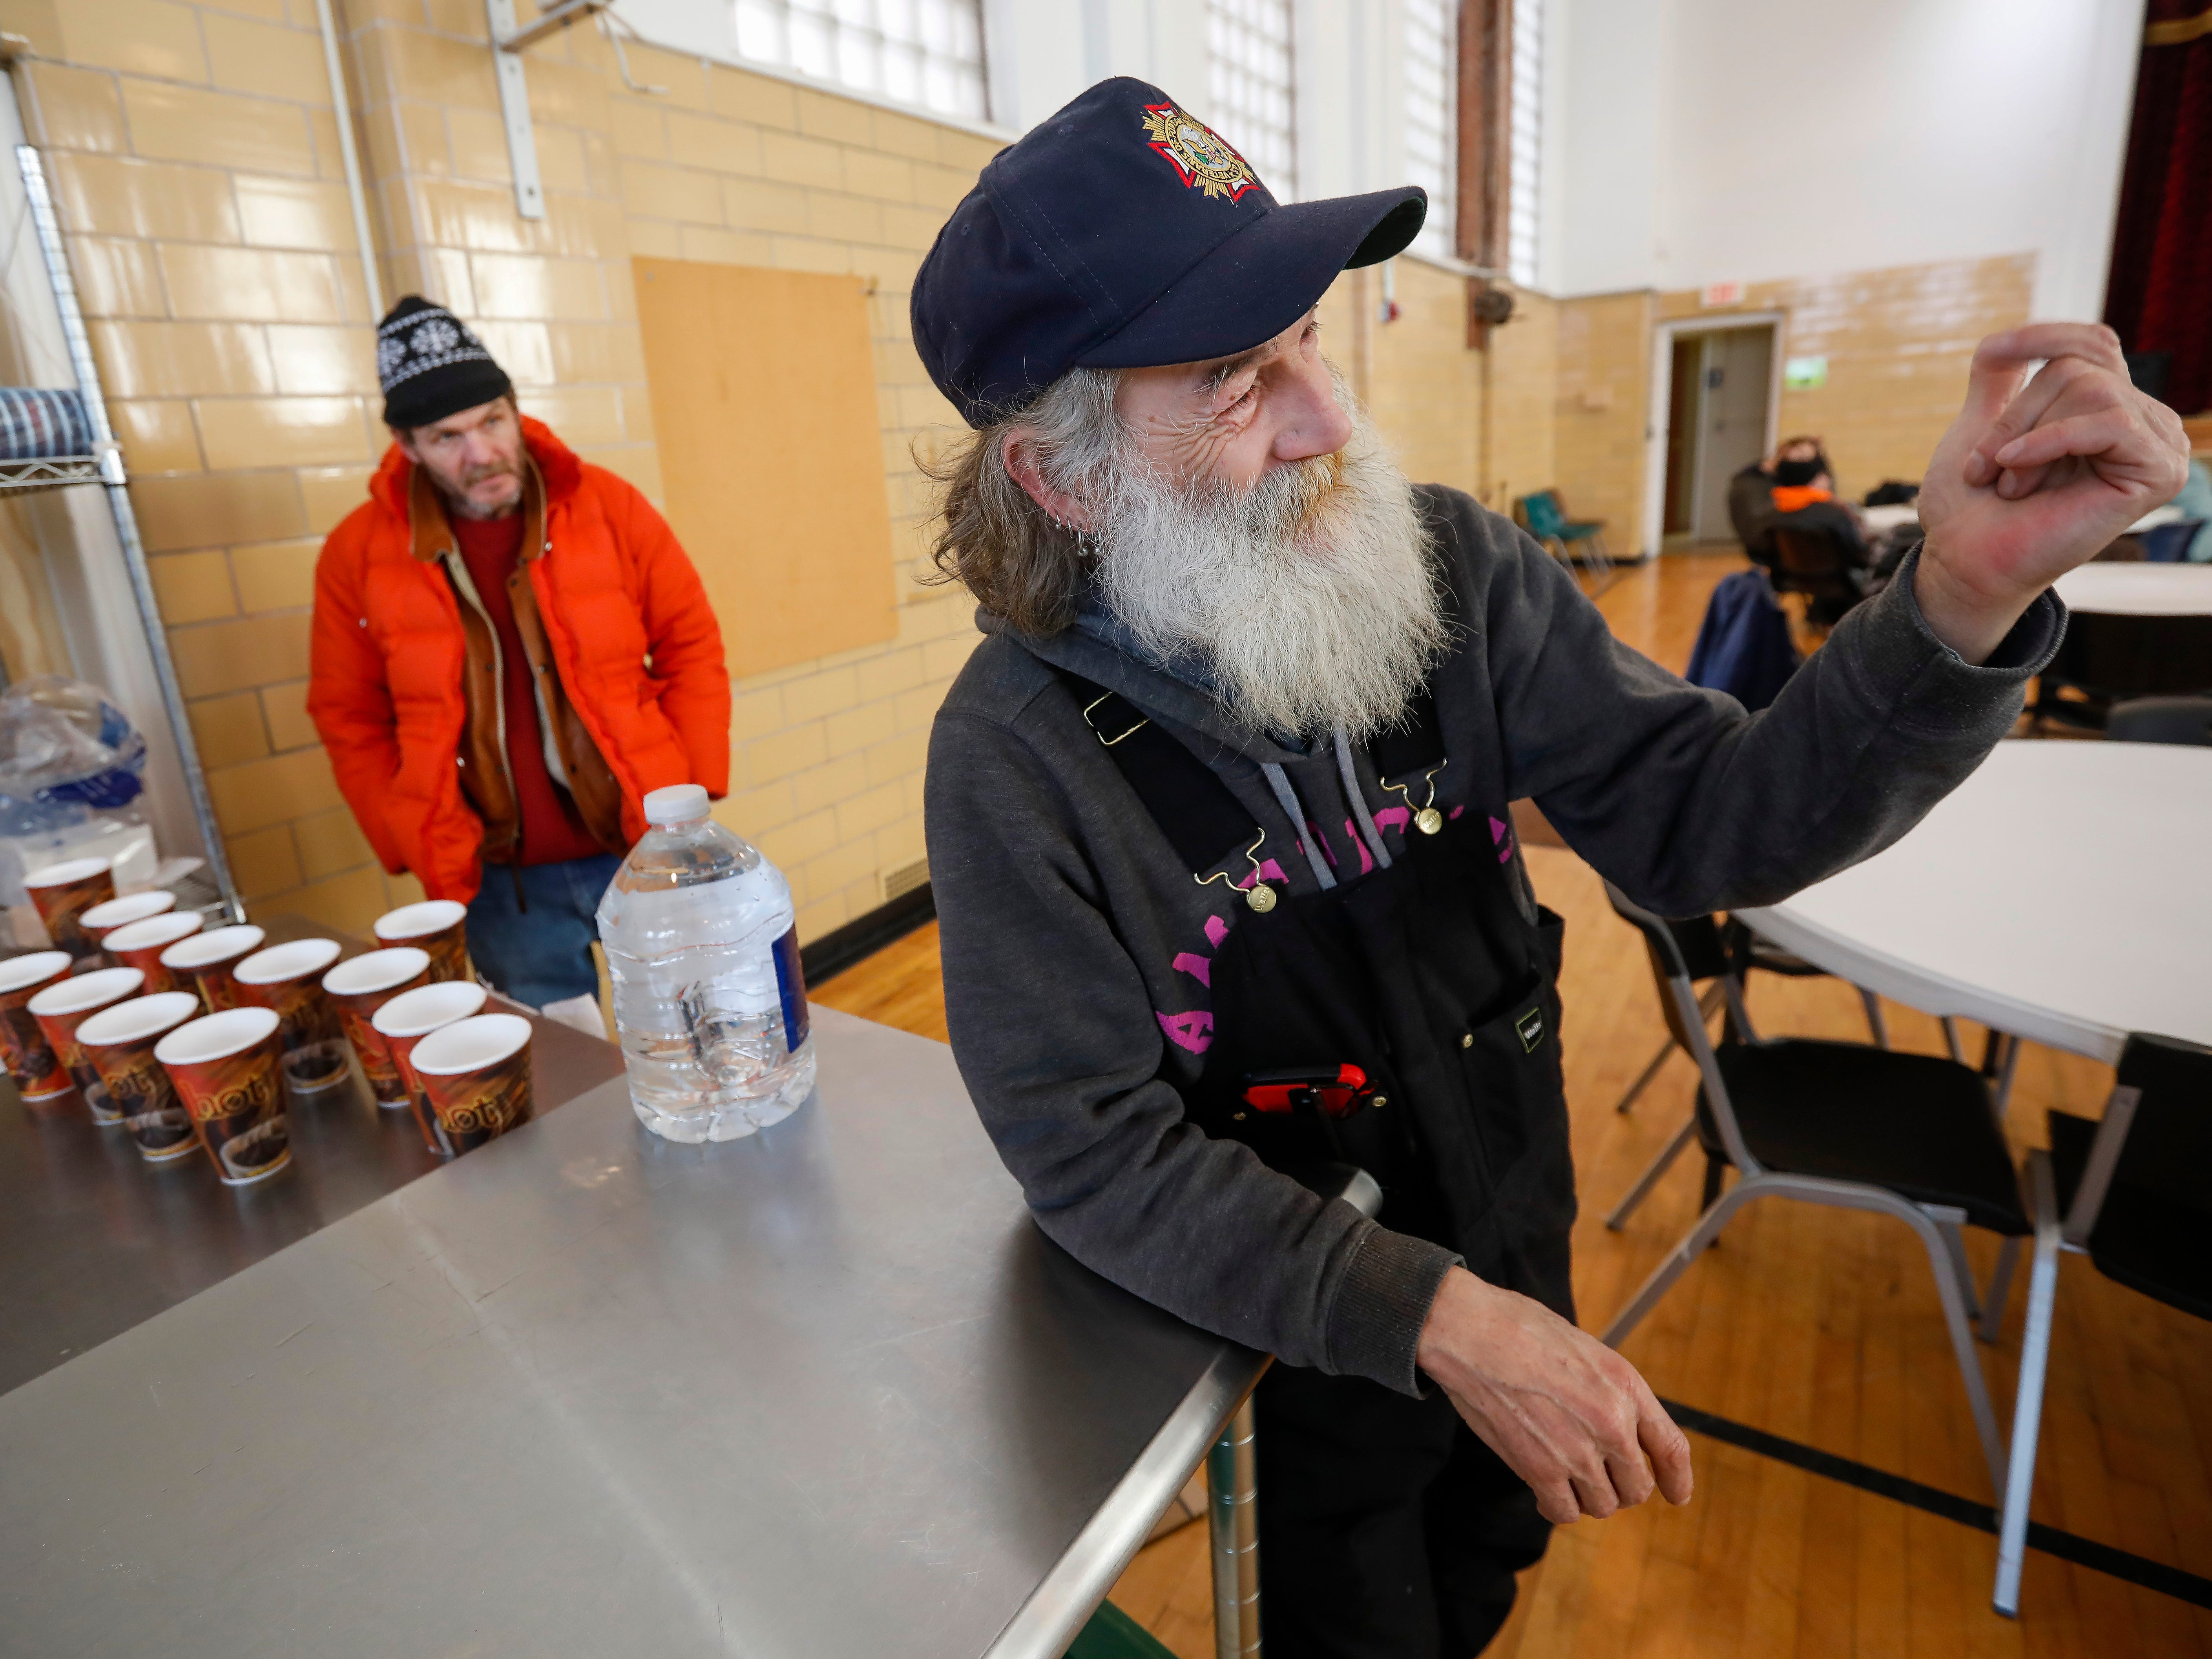 Gil Rife, right, who has been homeless for 3 years, motions to one of his friends to come talk to him at Franciscan Villa Wednesday, Feb. 20, 2019.